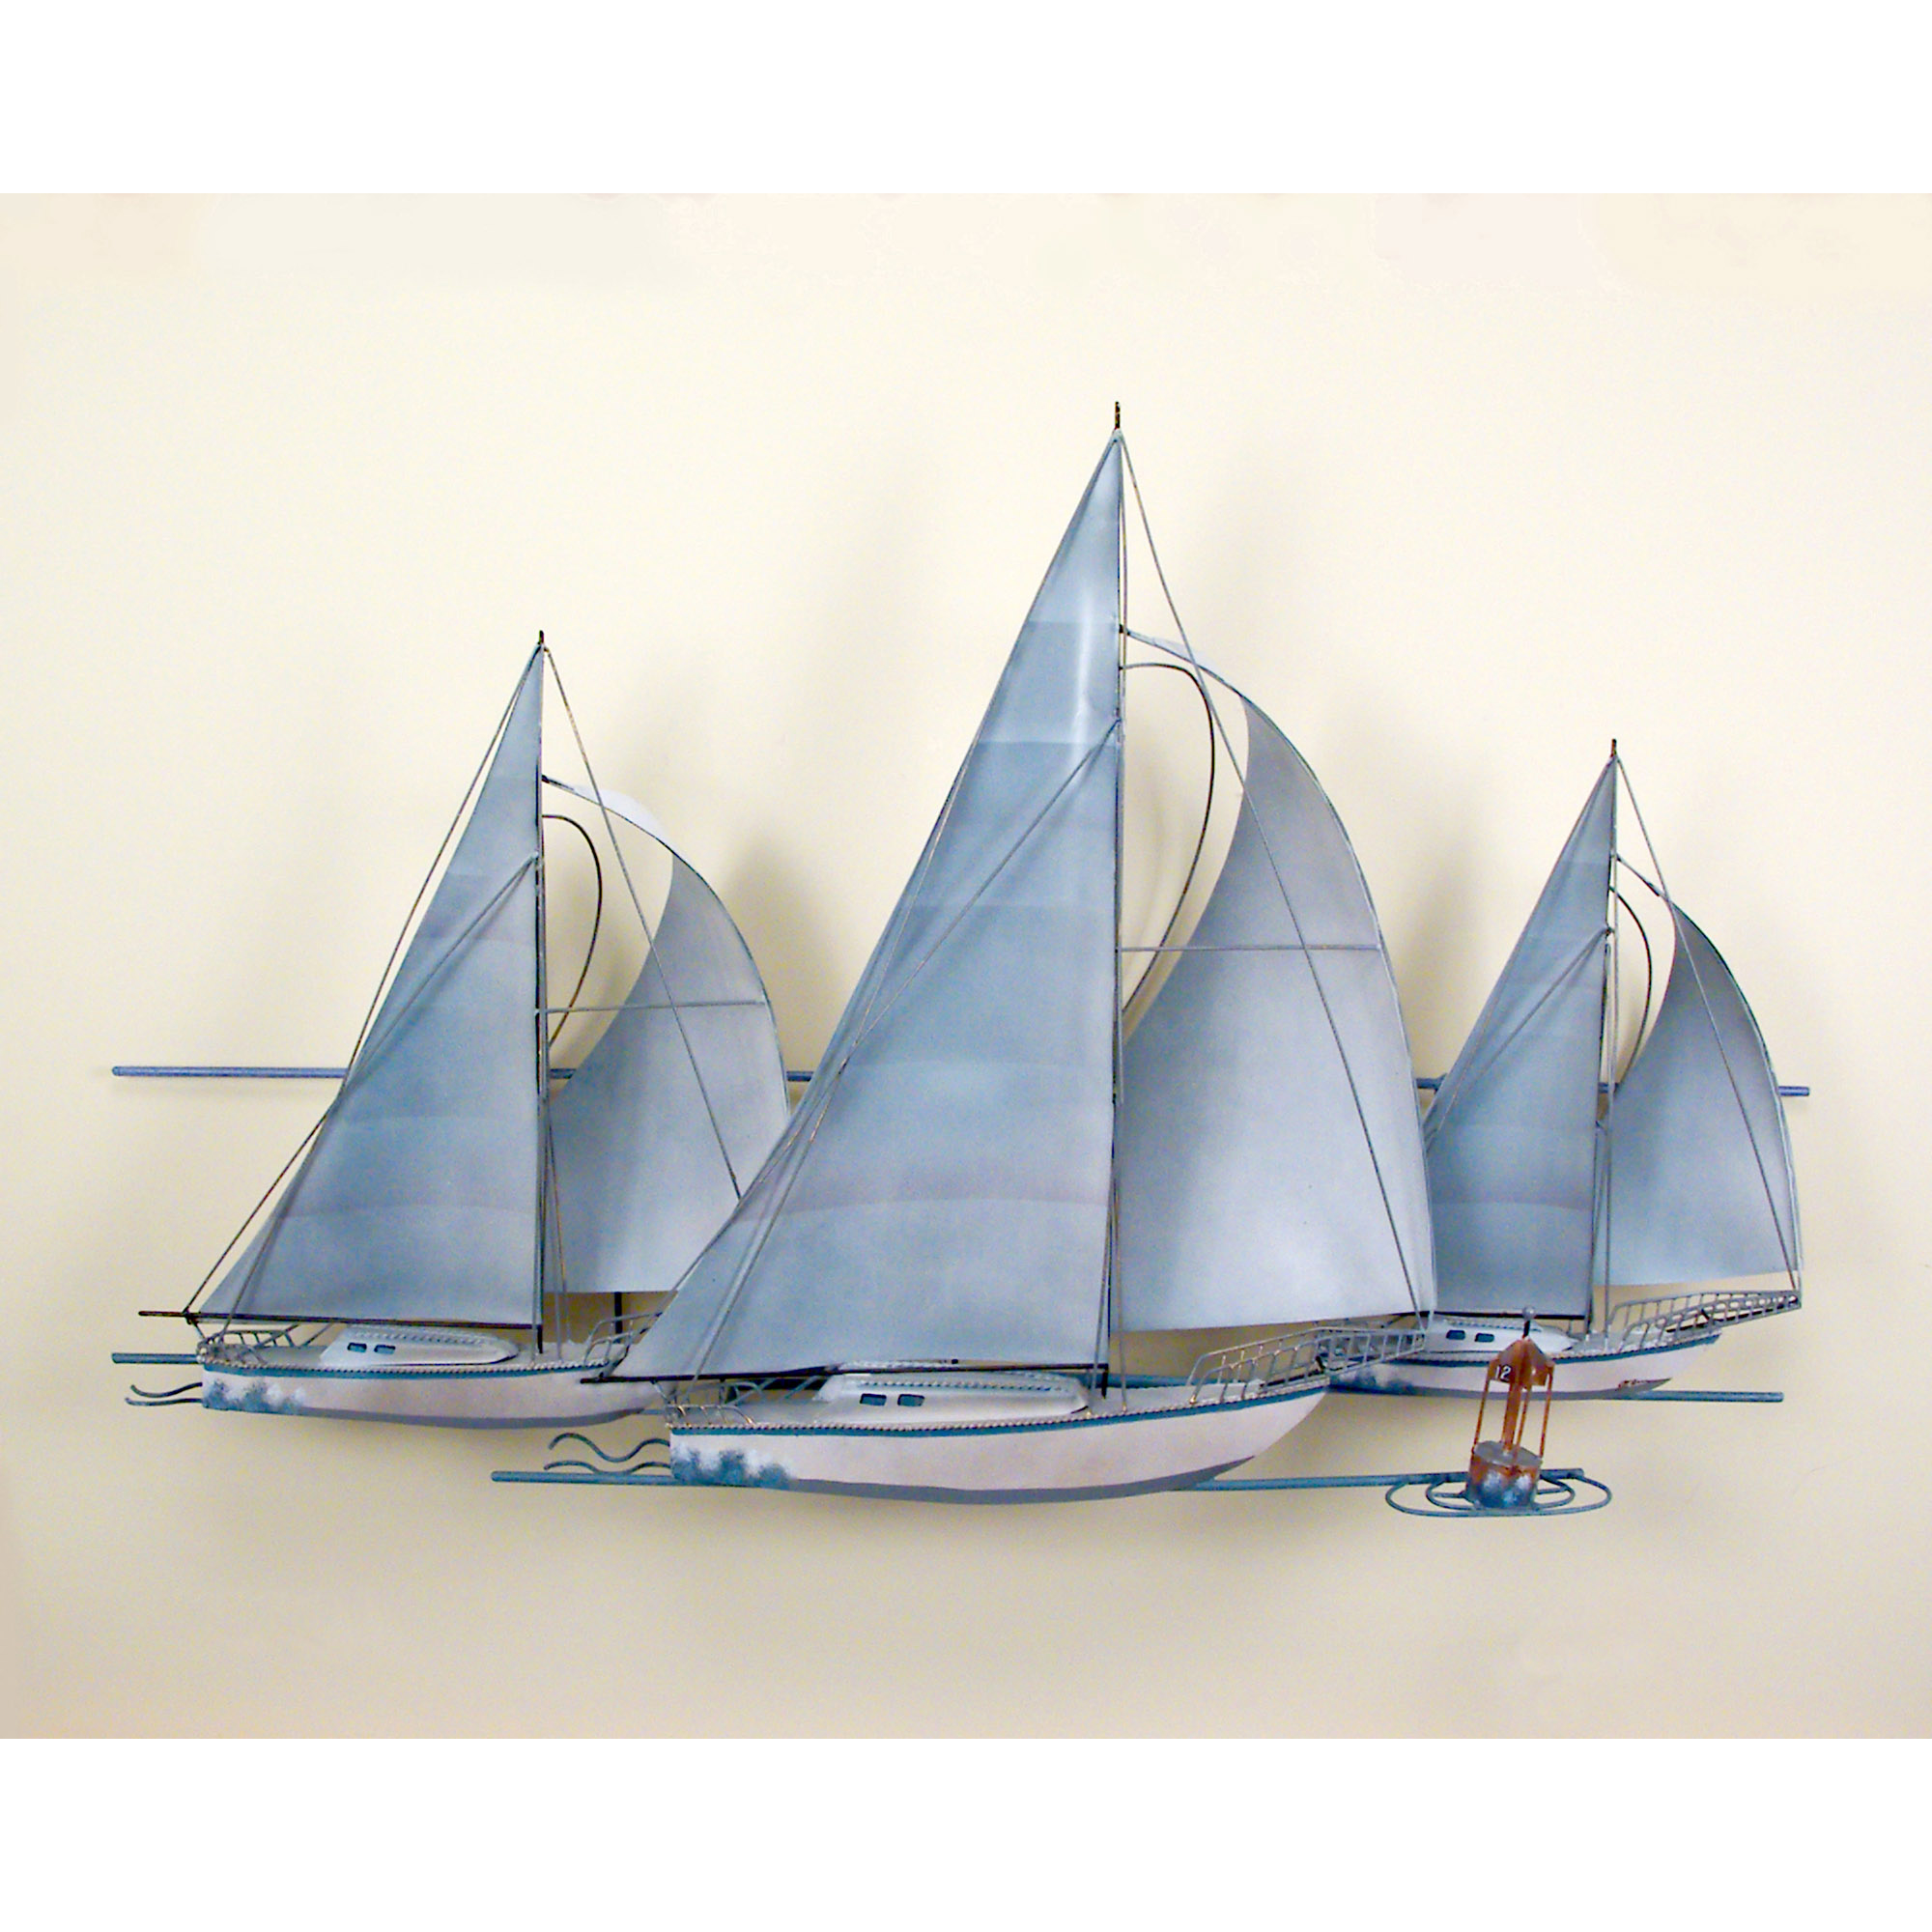 At the races three sail boats race wall art wall hanging for Decoration yacht